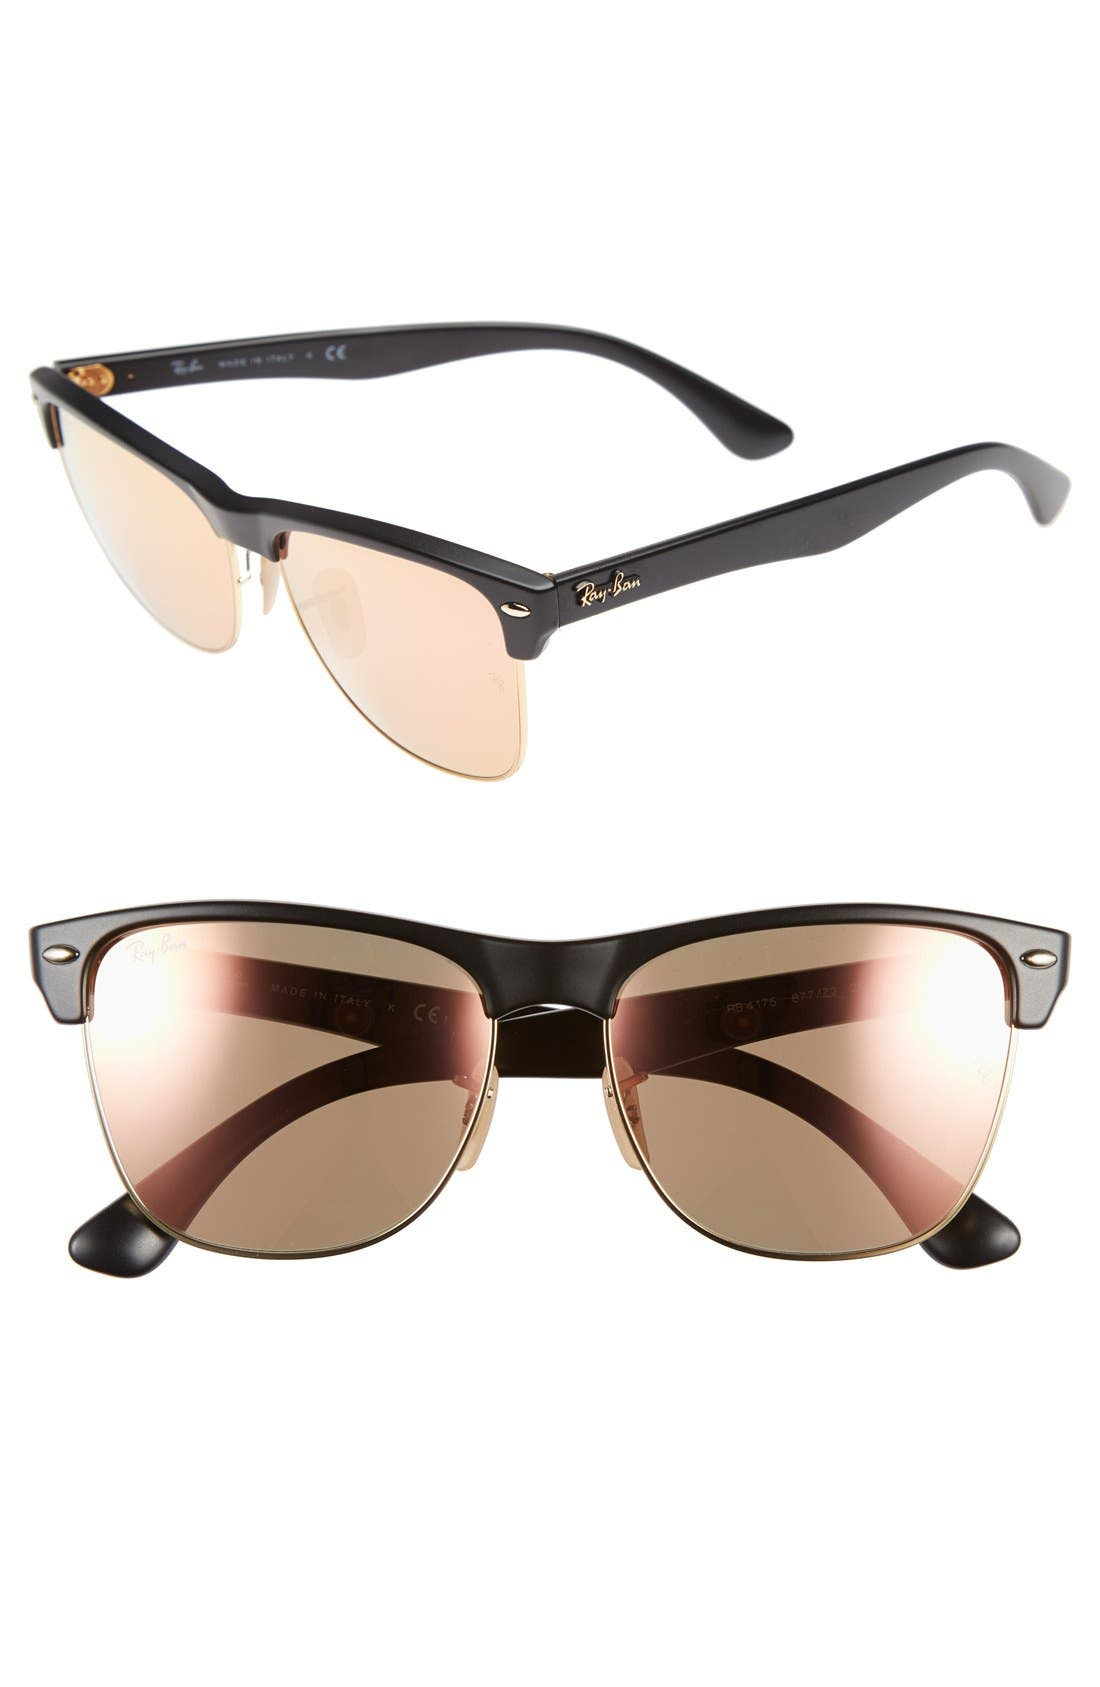 Ray-Ban Highstreet 57mm Sunglasses (Nordstrom Exclusive)